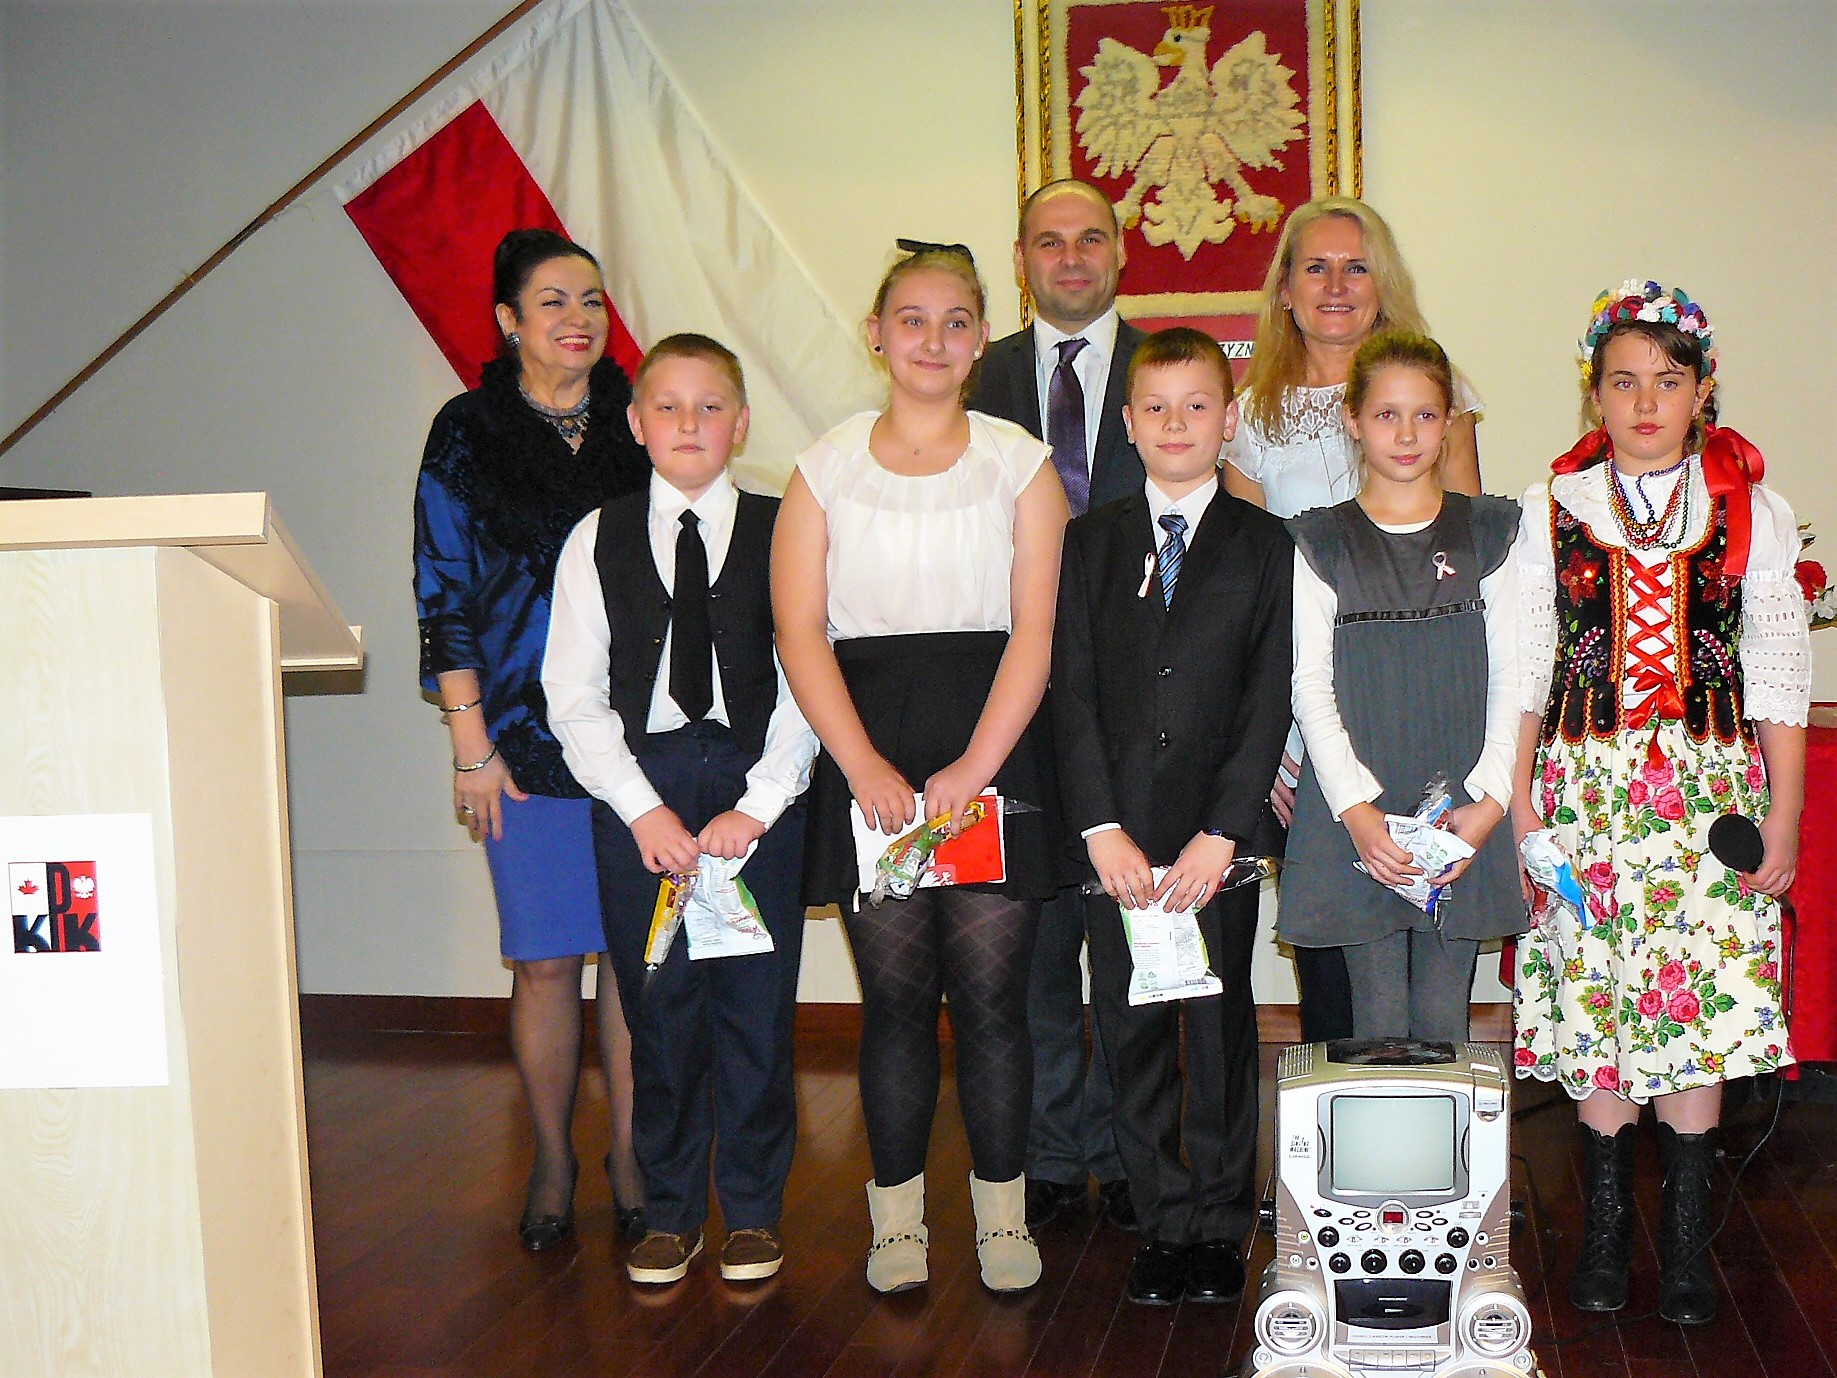 Polish Saturda School Surrey